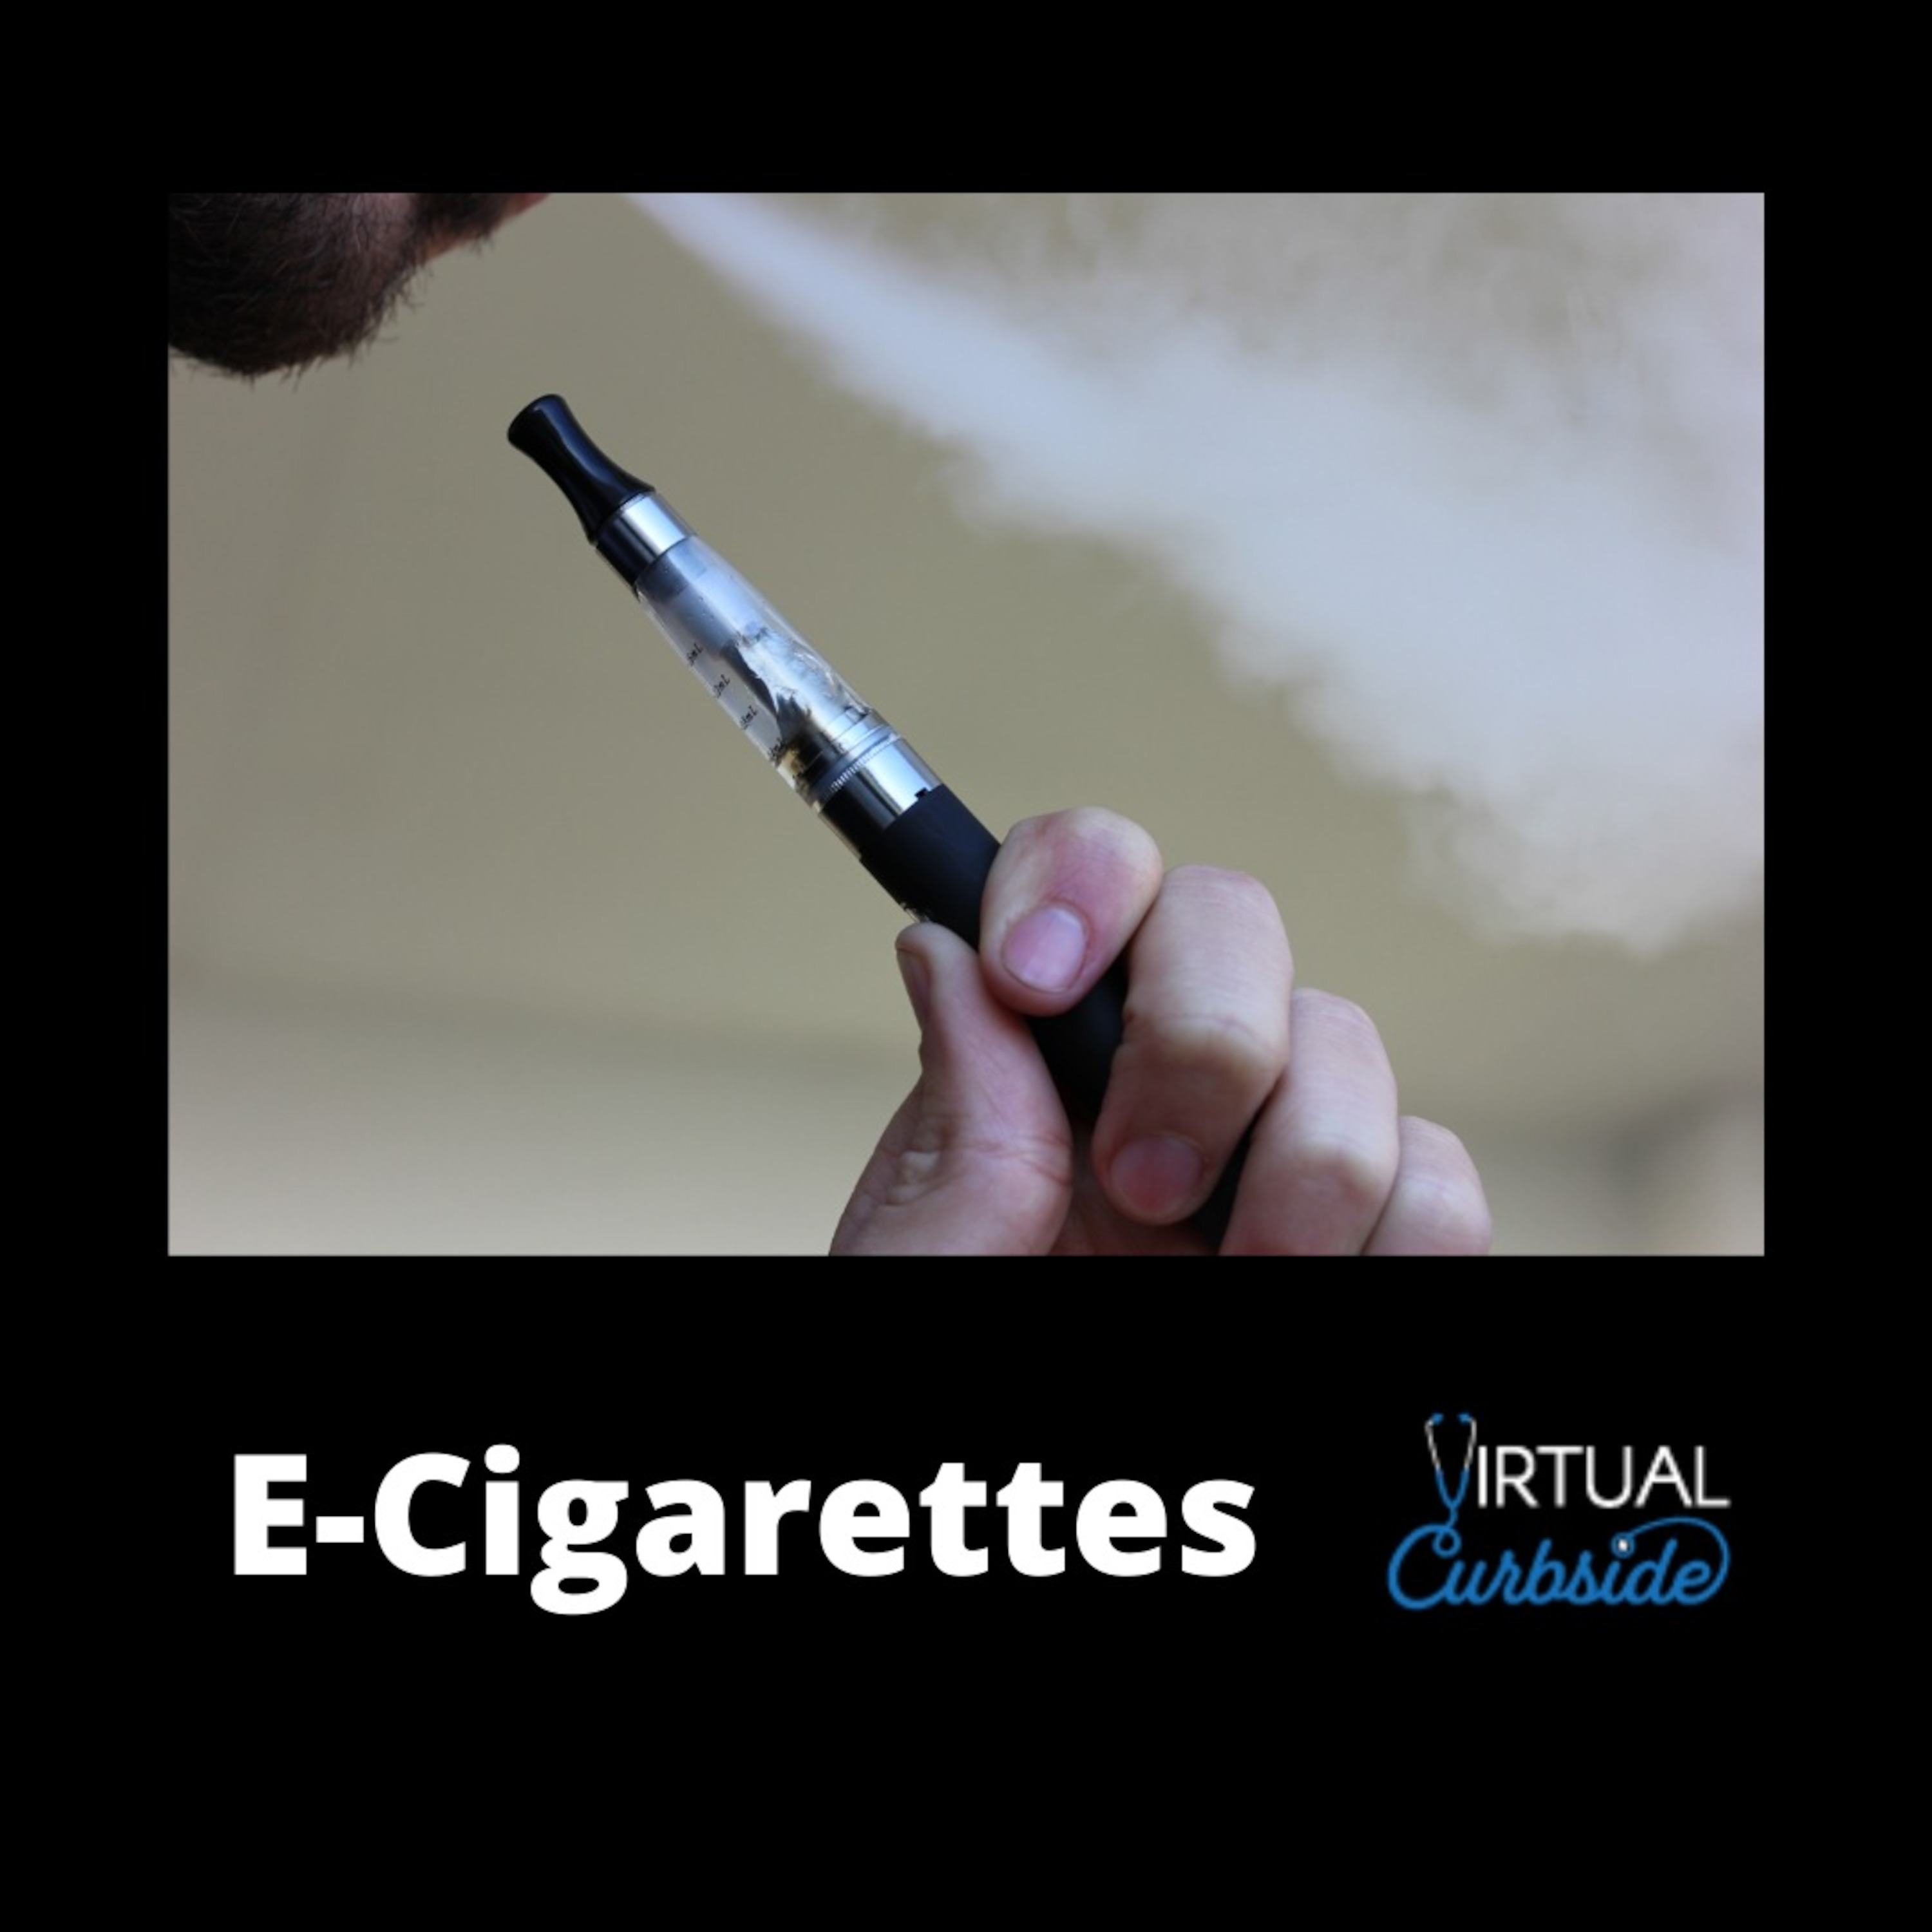 #28-1 E-Cigarettes: What's Available